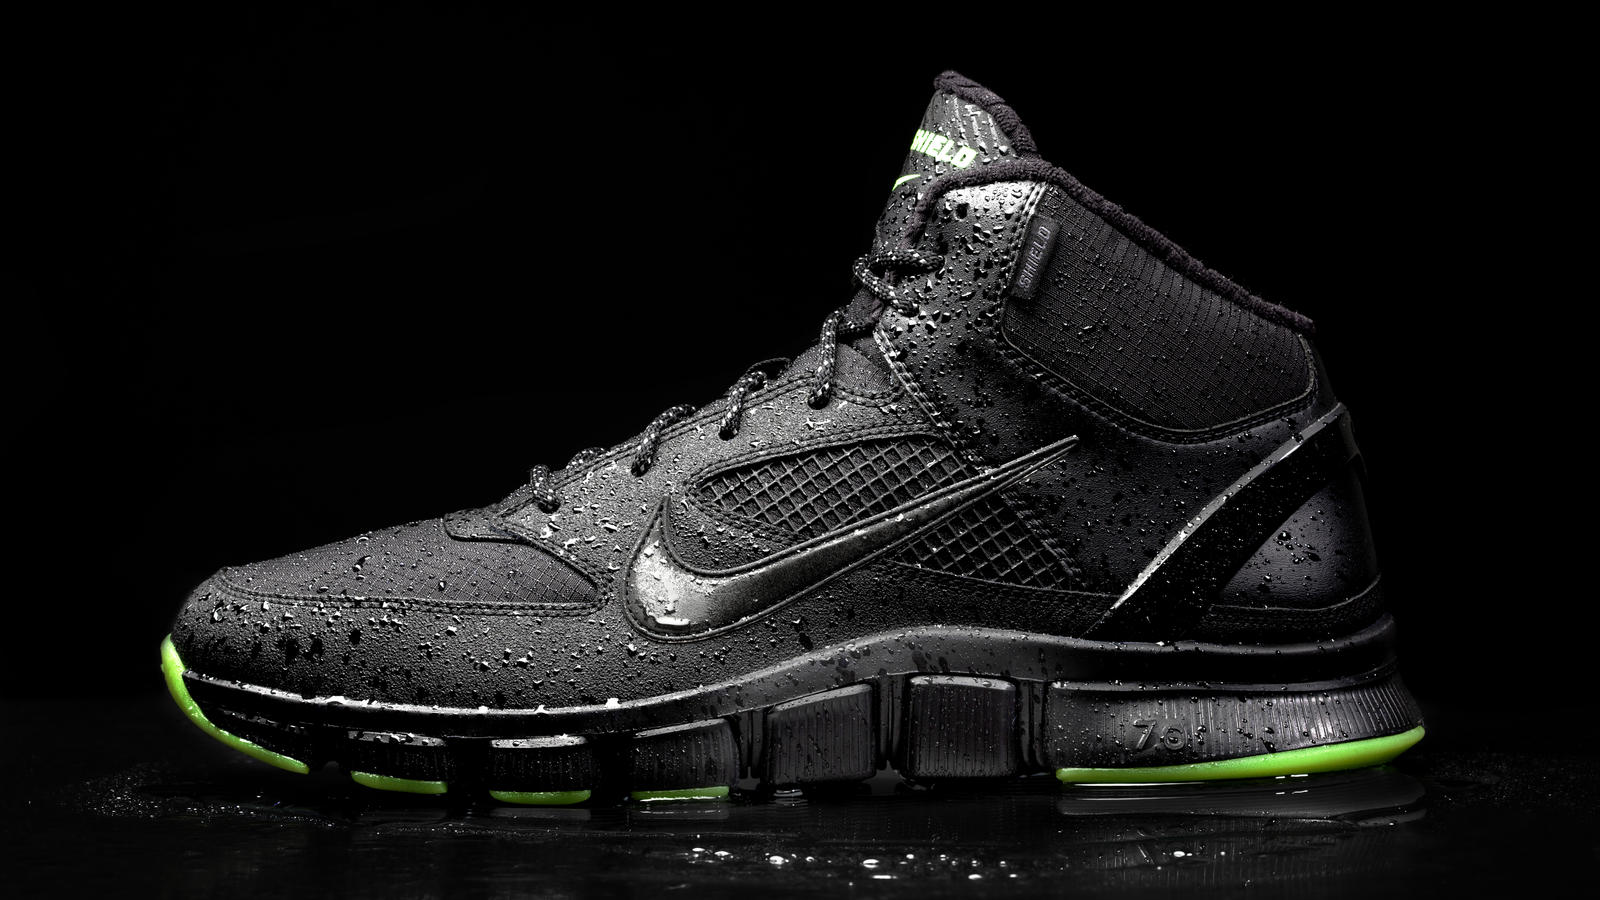 quality design 0aaf1 38643 Introducing the Nike Free Trainer 7.0 Shield - Nike News